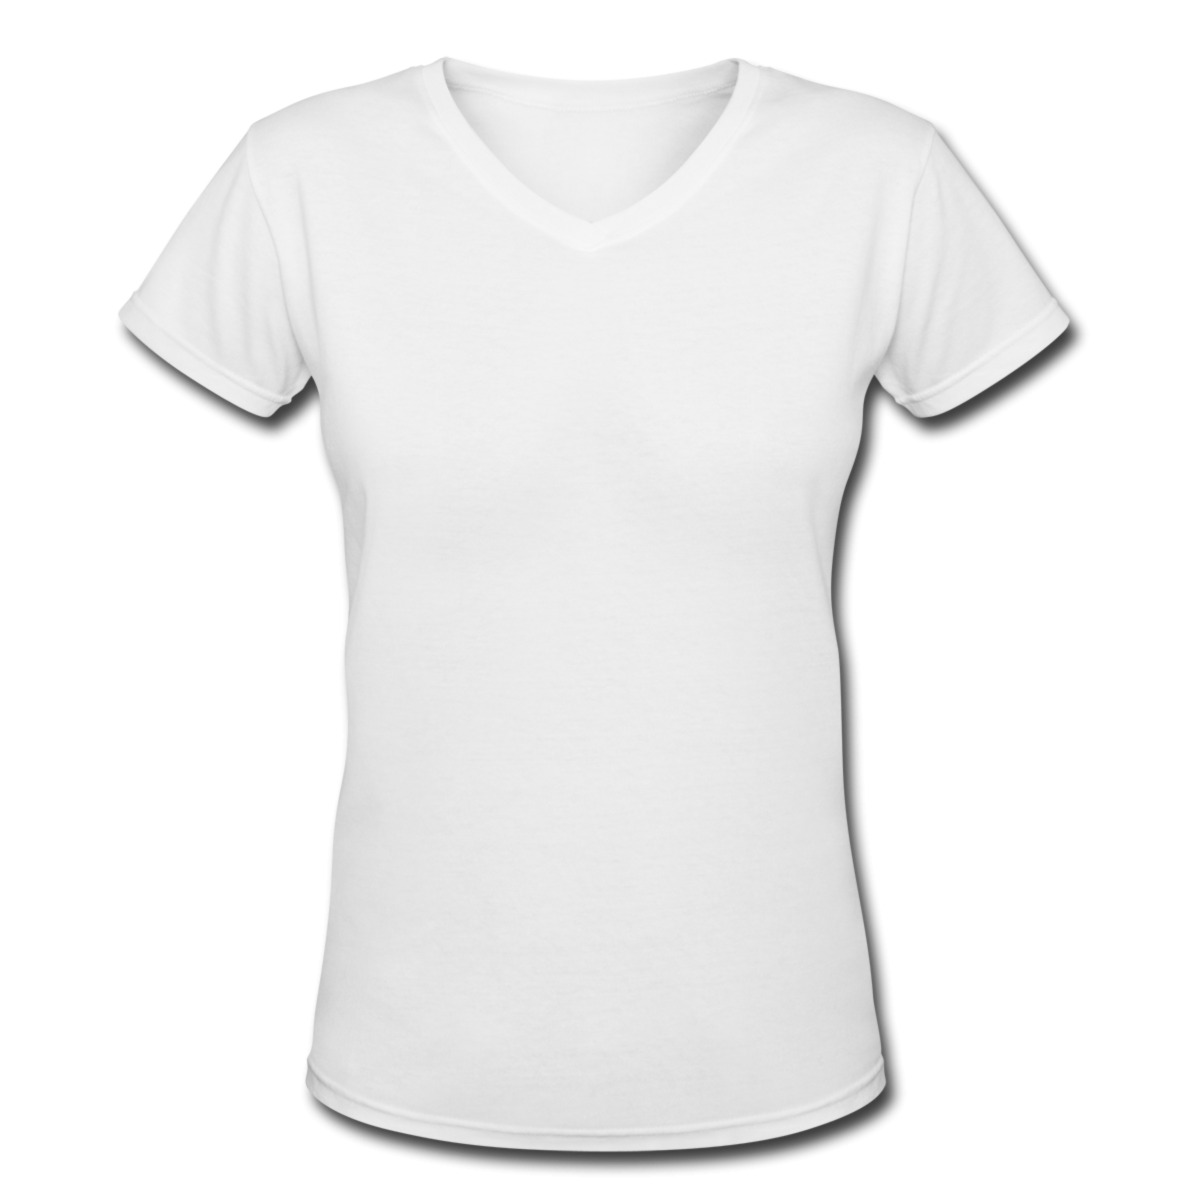 Blank white t shirt png. Clipart free icons and